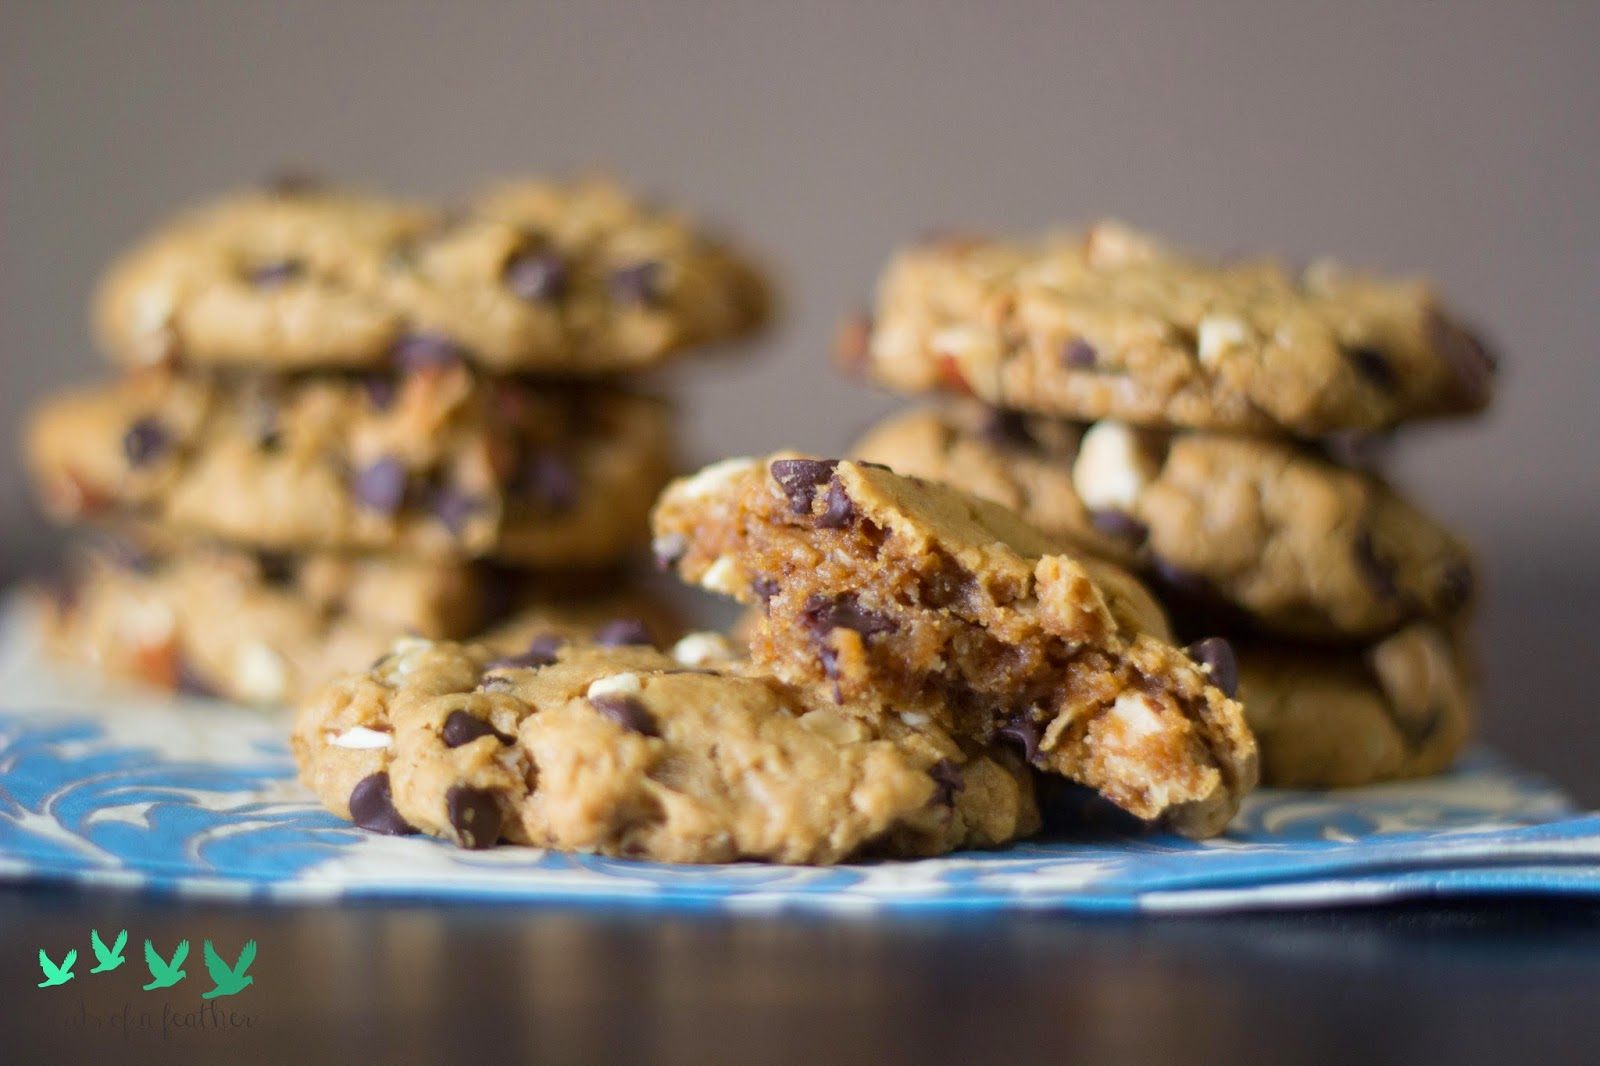 http://www.theweatheredpalate.com/2014/08/peanut-butter-oatmeal-cookies.html